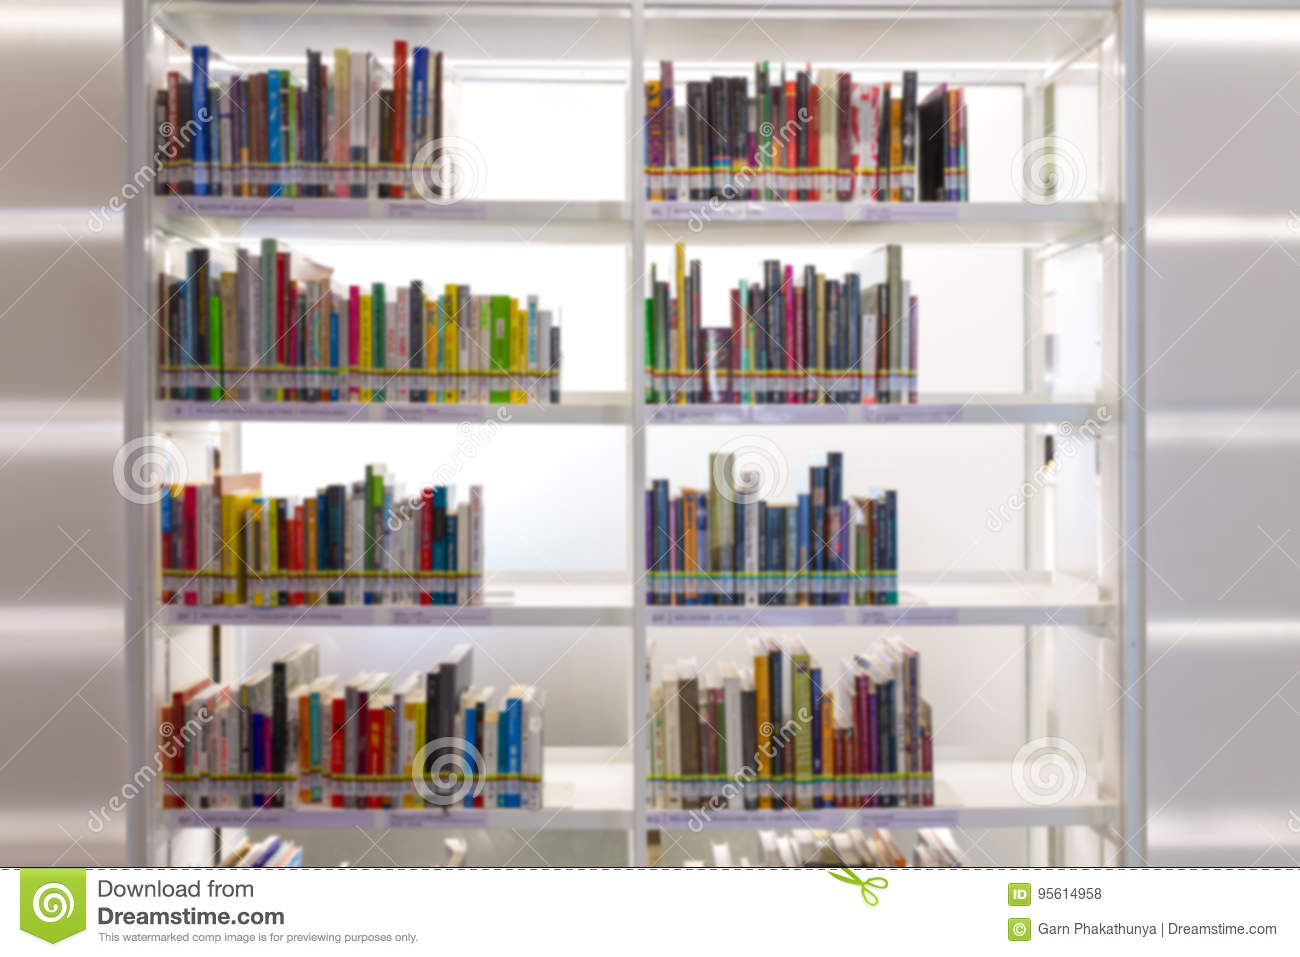 Books On Bookshelf In Library Room Abstract Blur De Focused Bac Download Preview